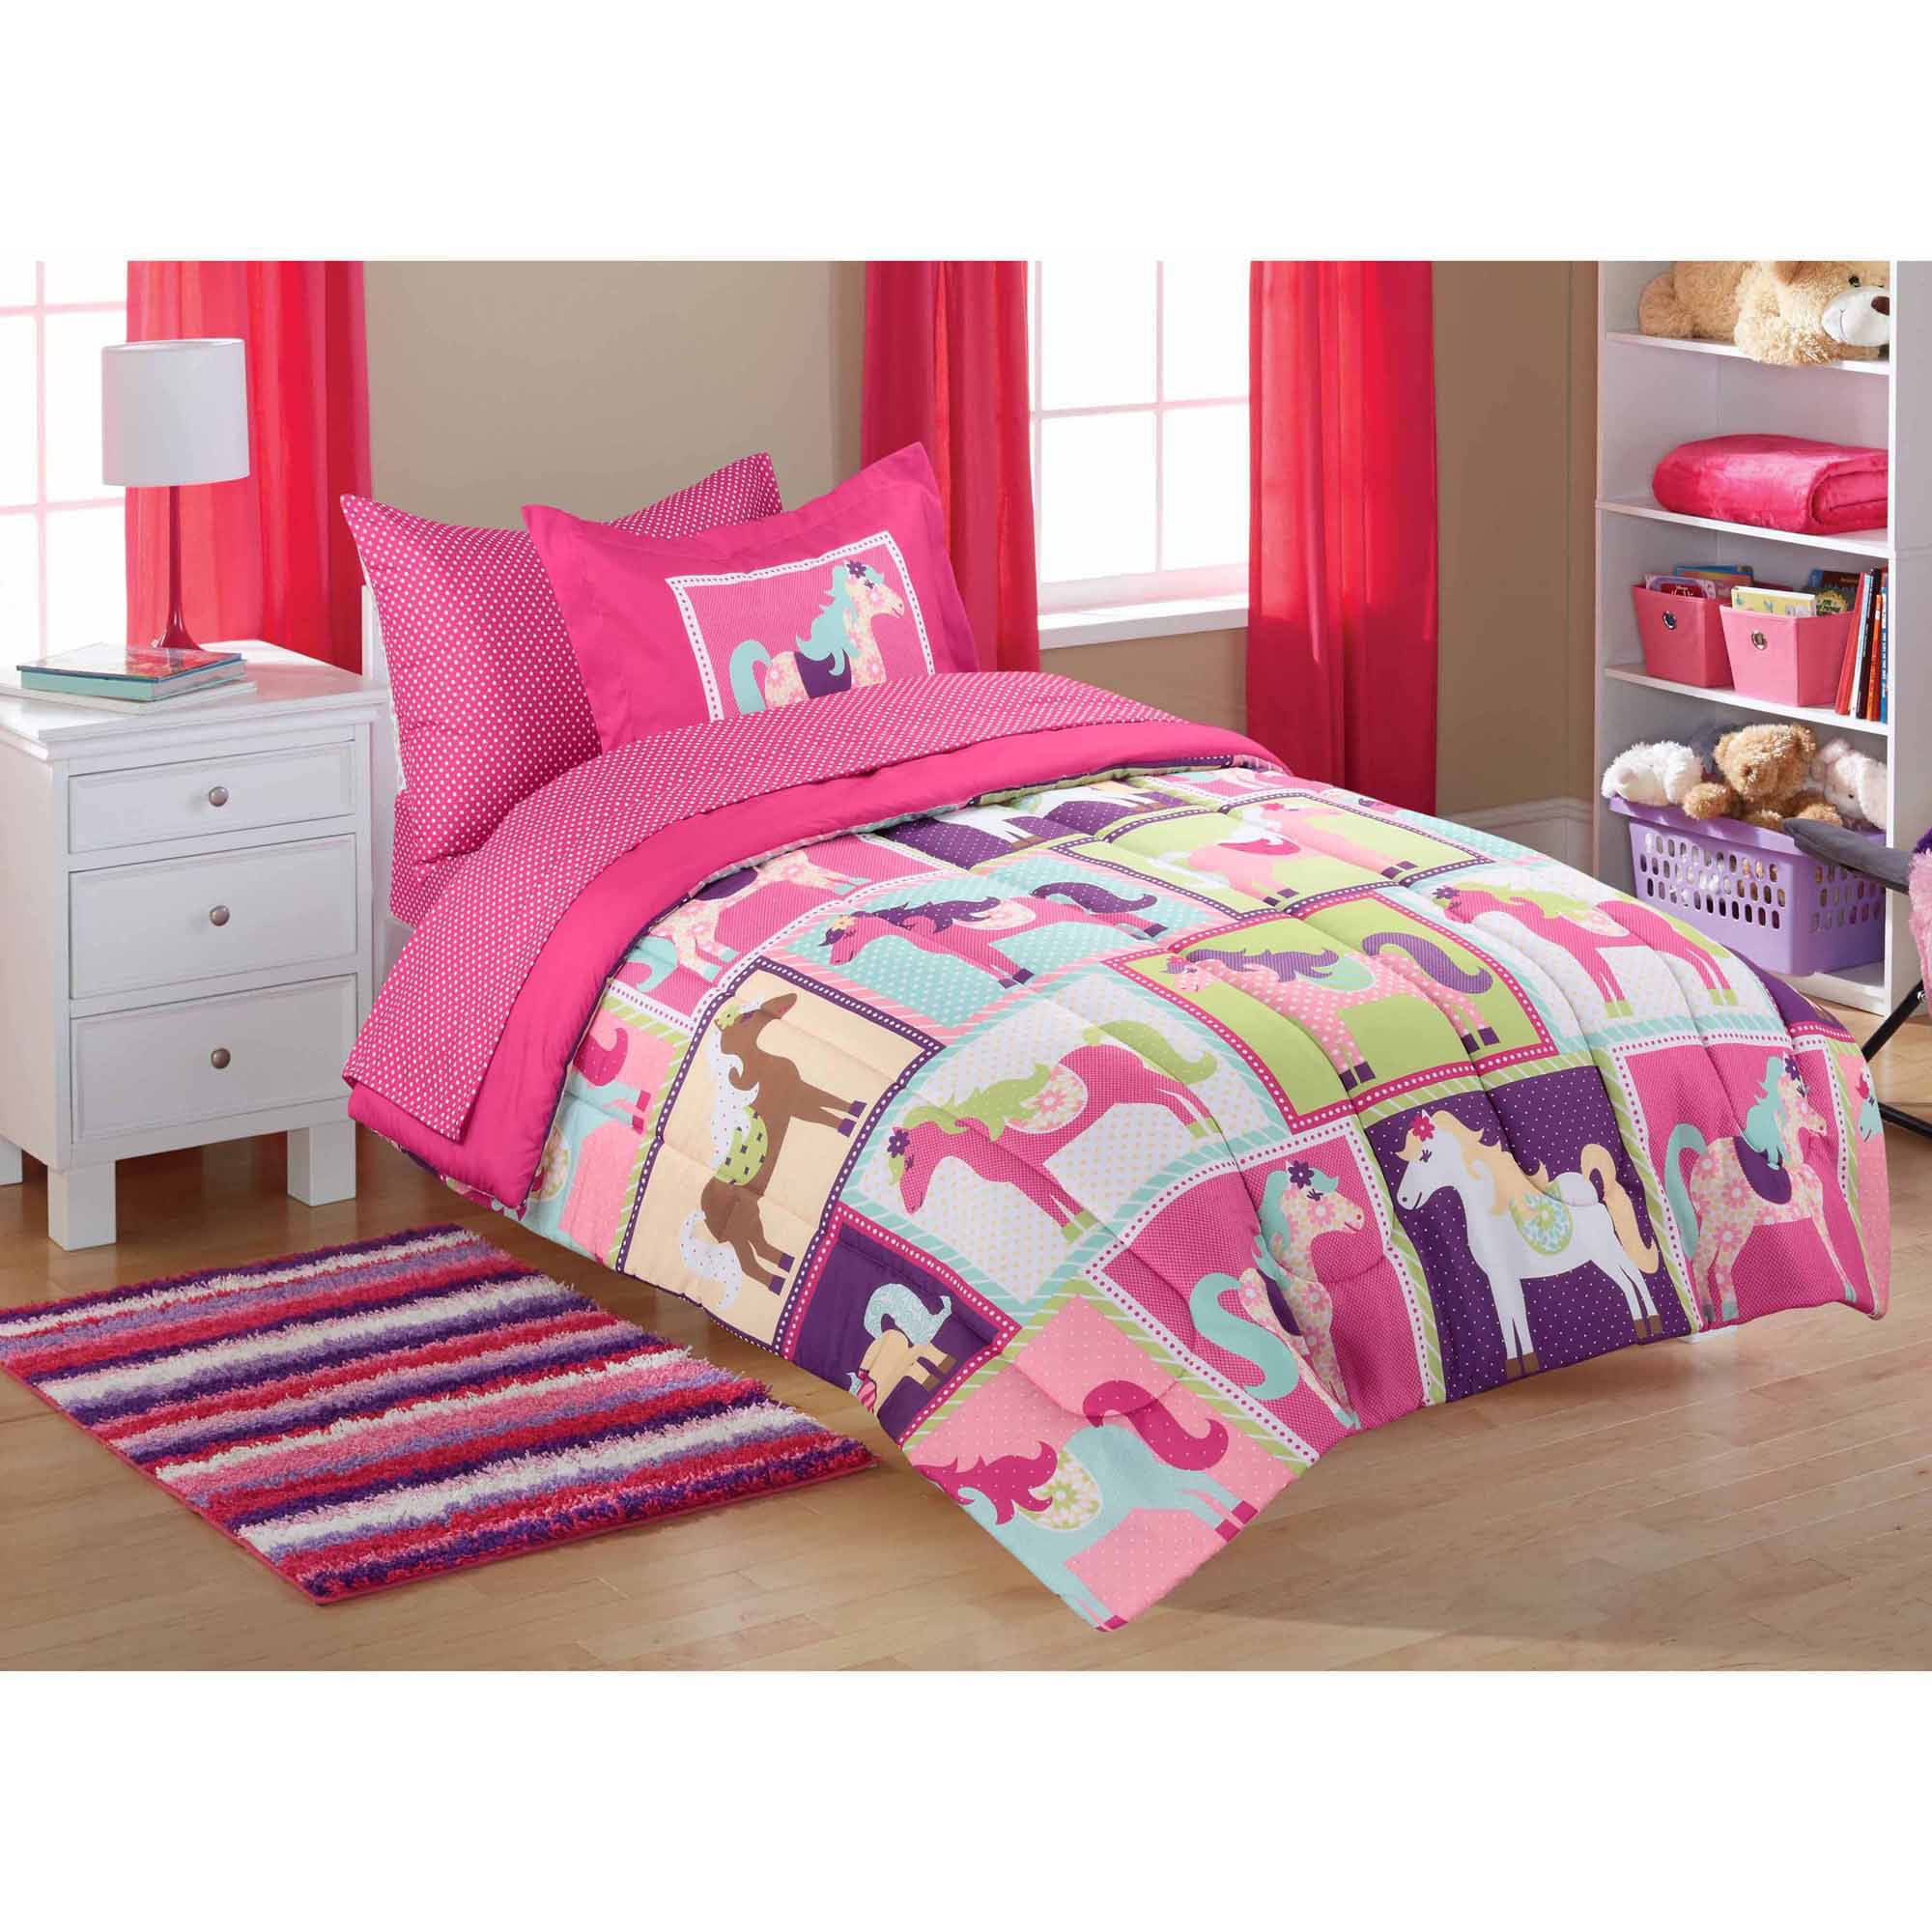 com bed set mainstays twin ip a cabin bedding bag coordinating in walmart